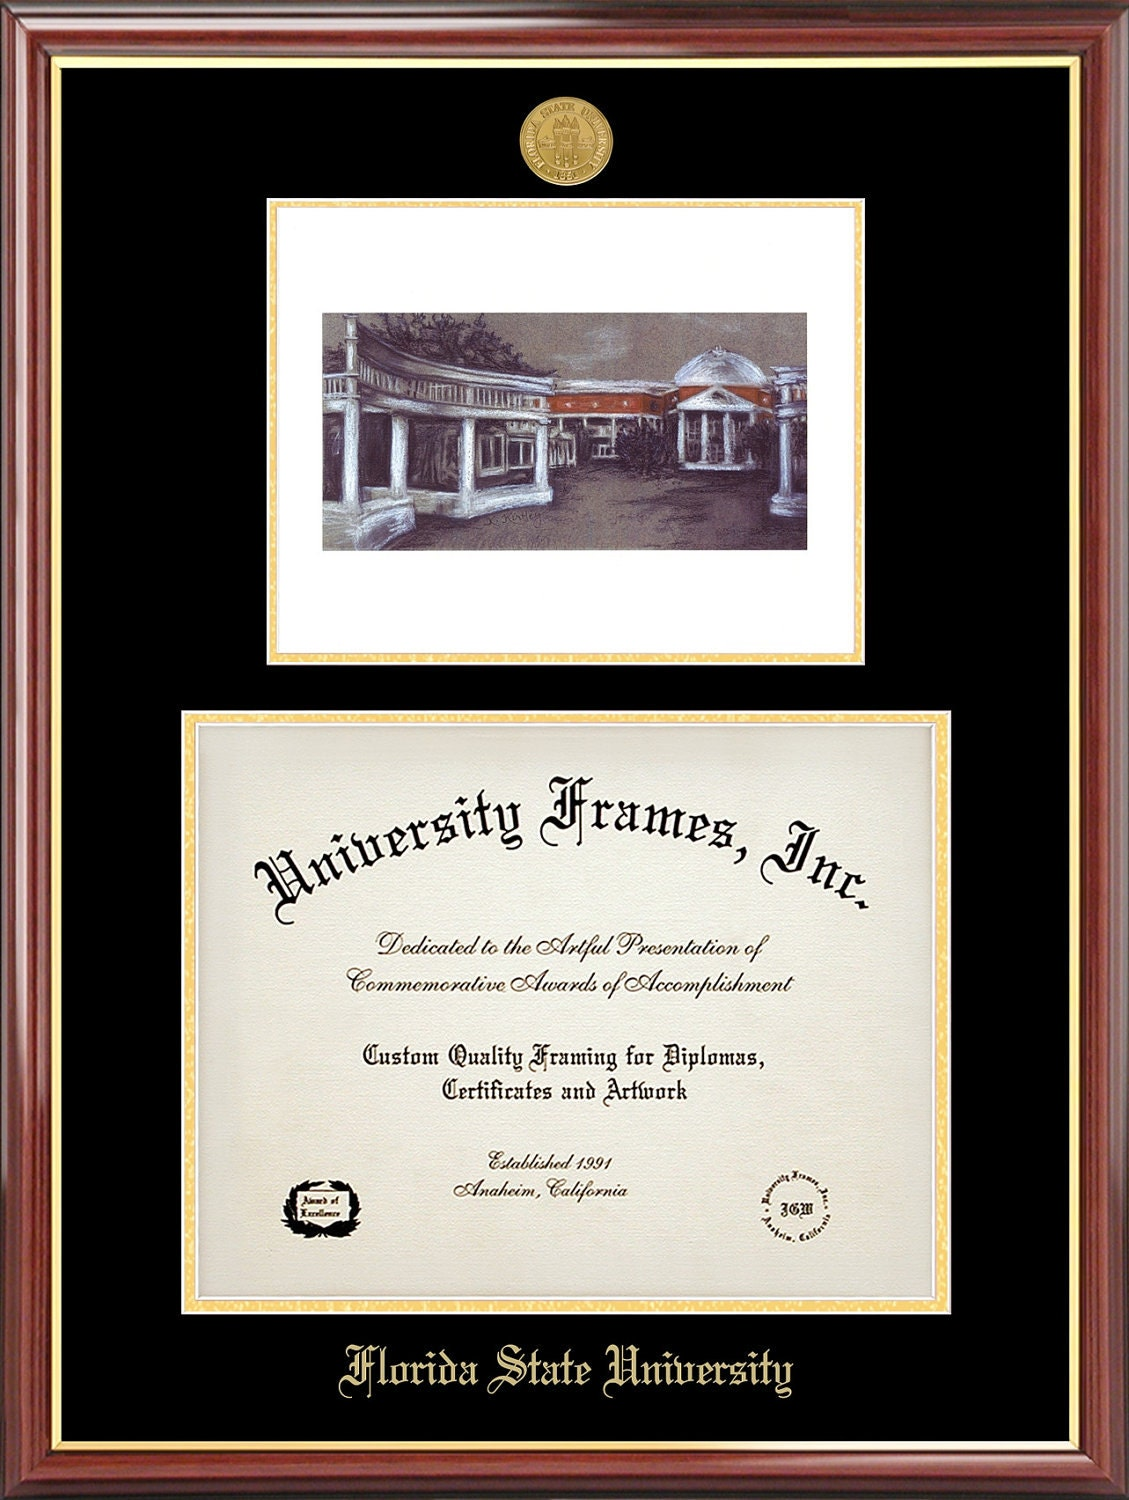 Luxury Framing Achievement Photo - Frame Photo Design Ideas ...